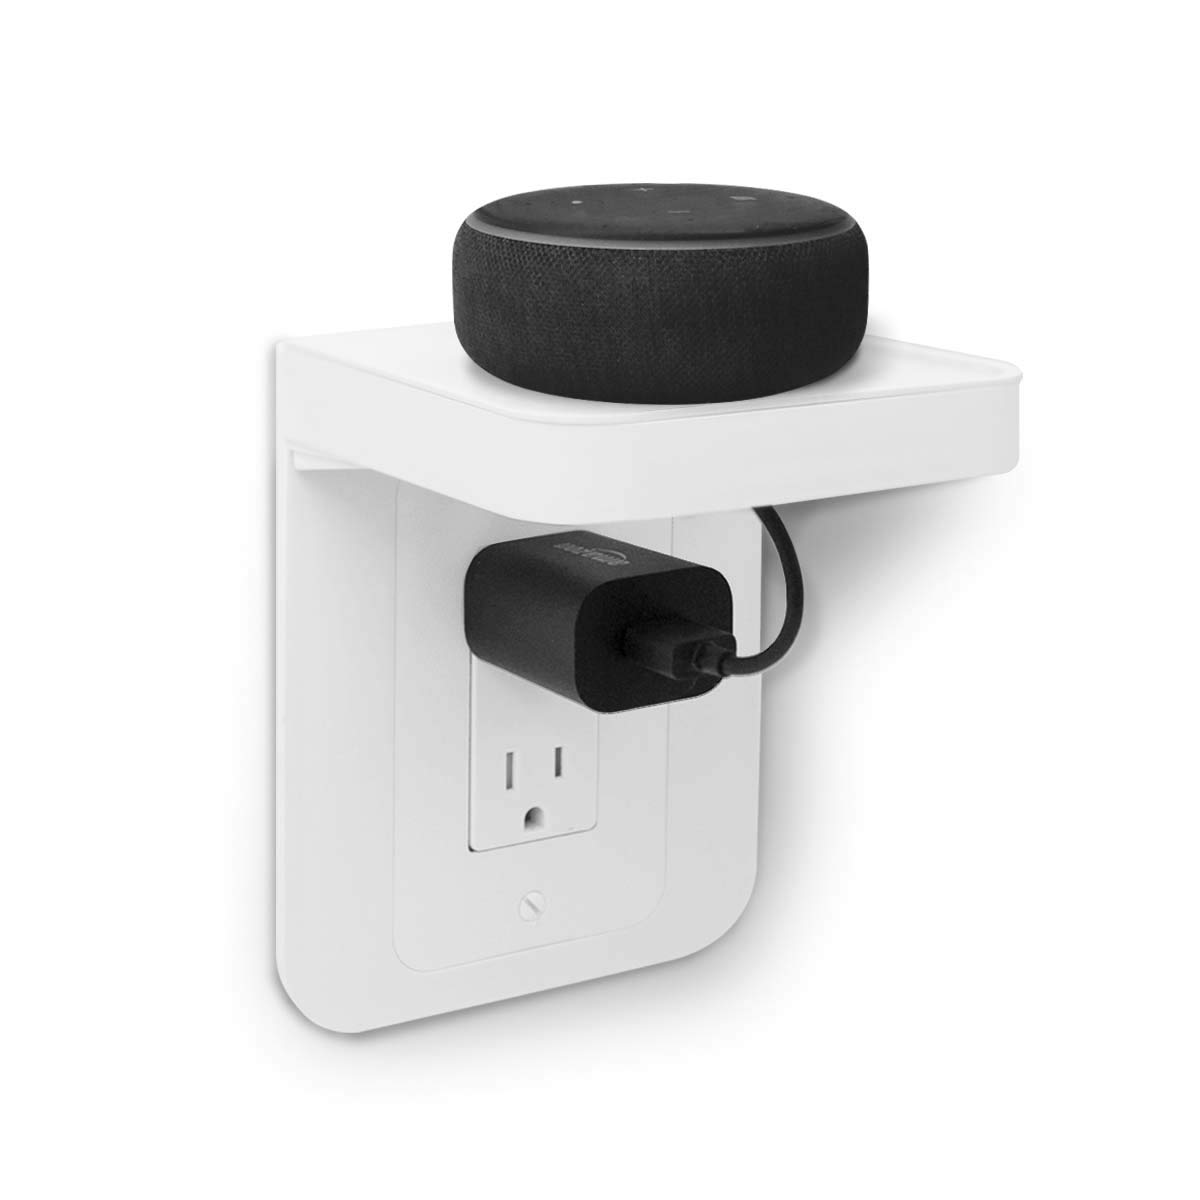 ALLICAVER Outlet Shelf, Power Perch with Built-In Cable Management, A Space Saving Solution for Google Home, Smart Speakers, Cellphones, Electric Toothbrush and More (White-decora)